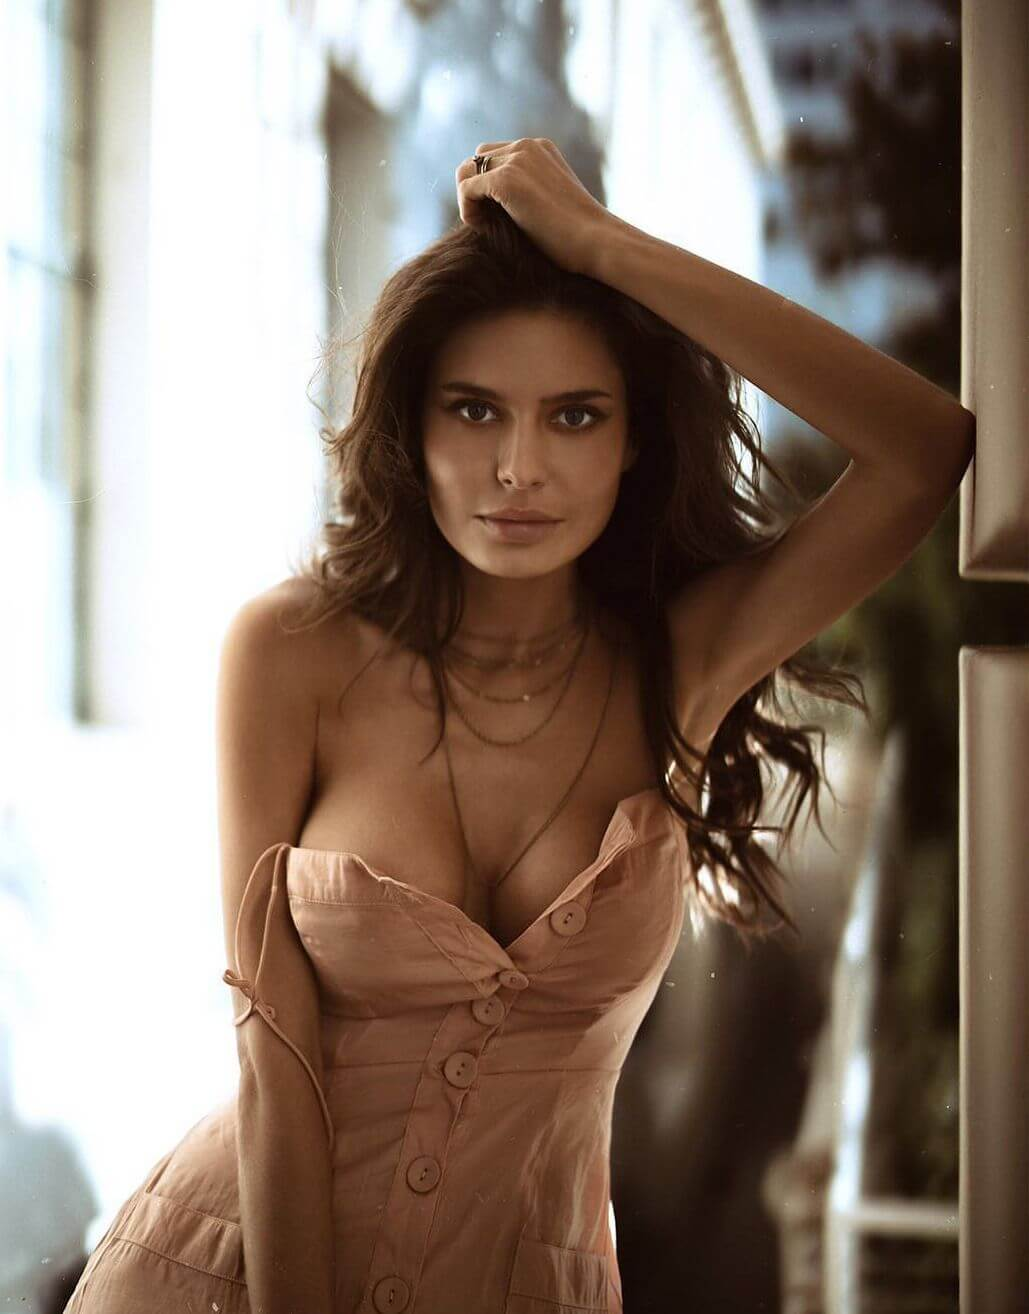 Escort Service In Airport International Hotel Are Ready To Fulfill You